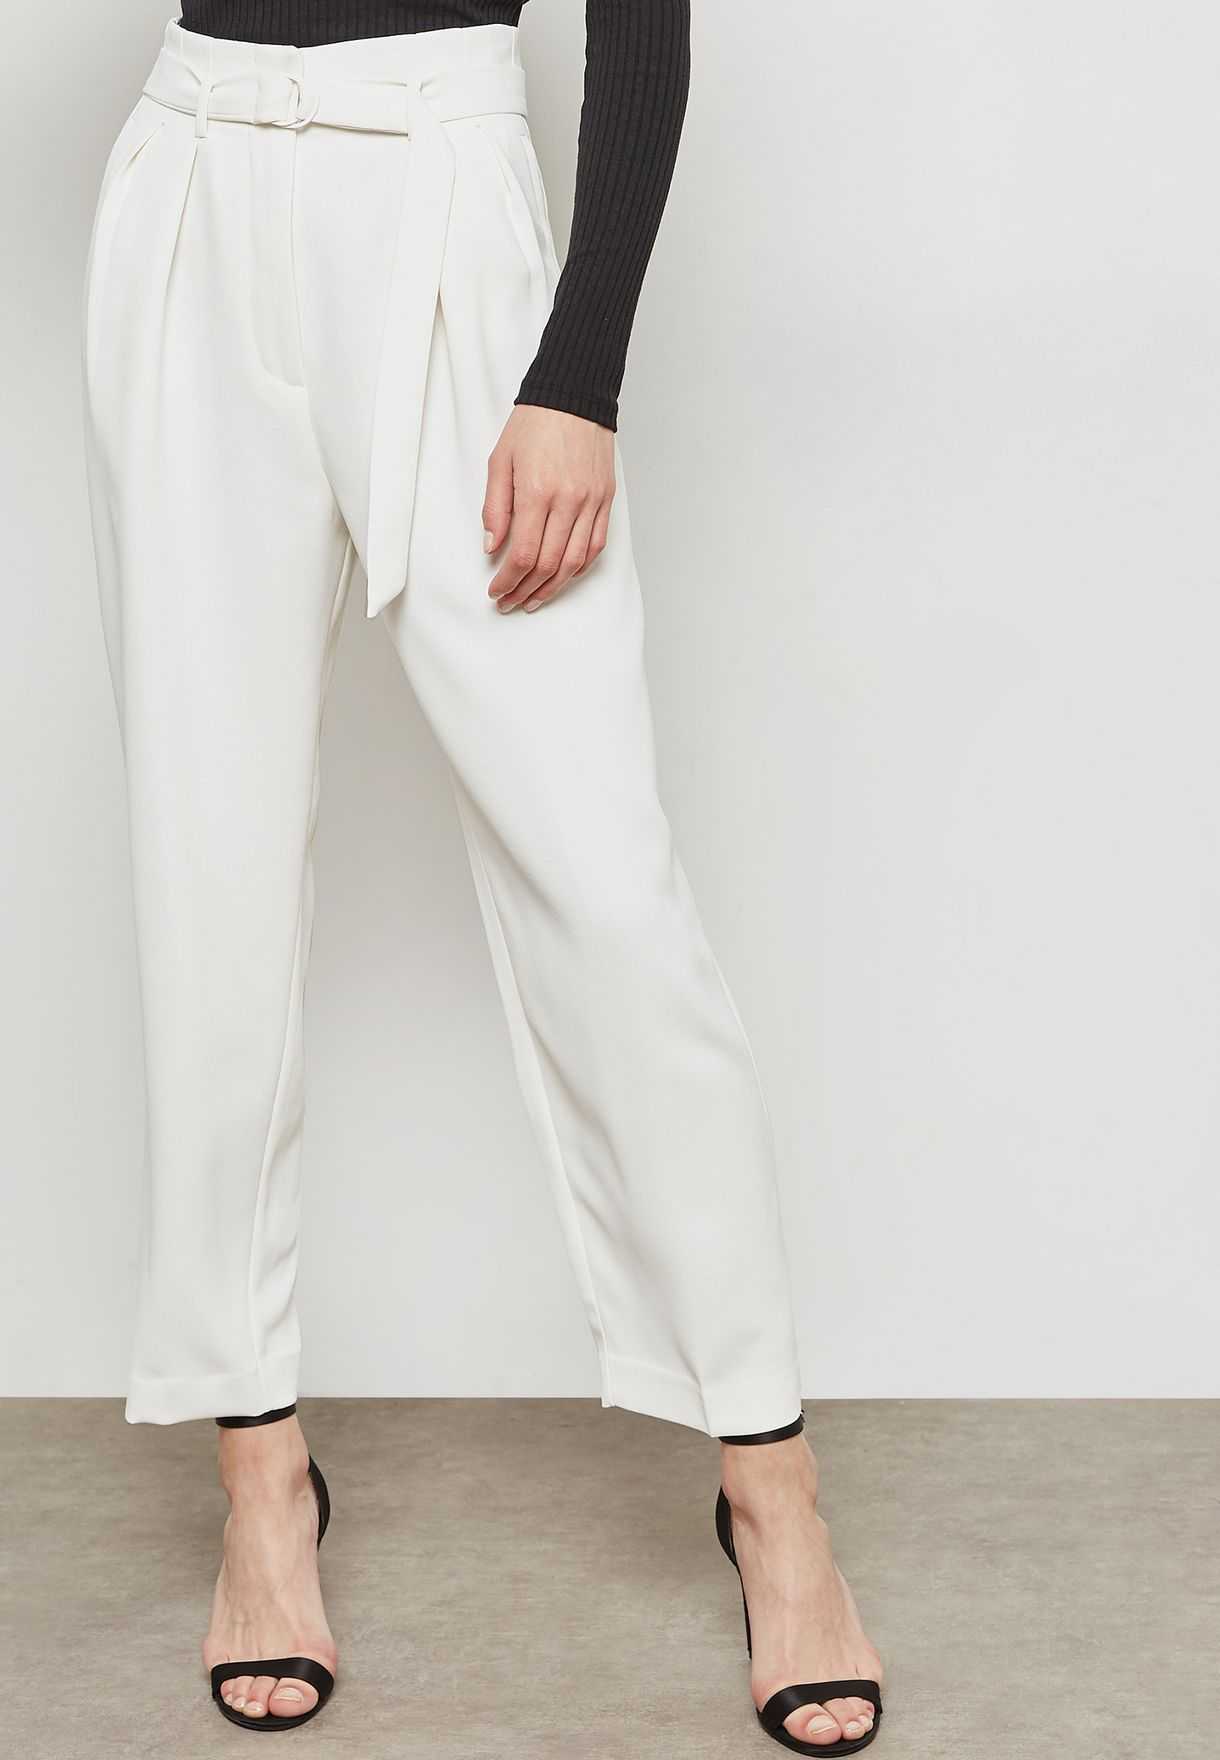 Belted Ankle Grazer Pants